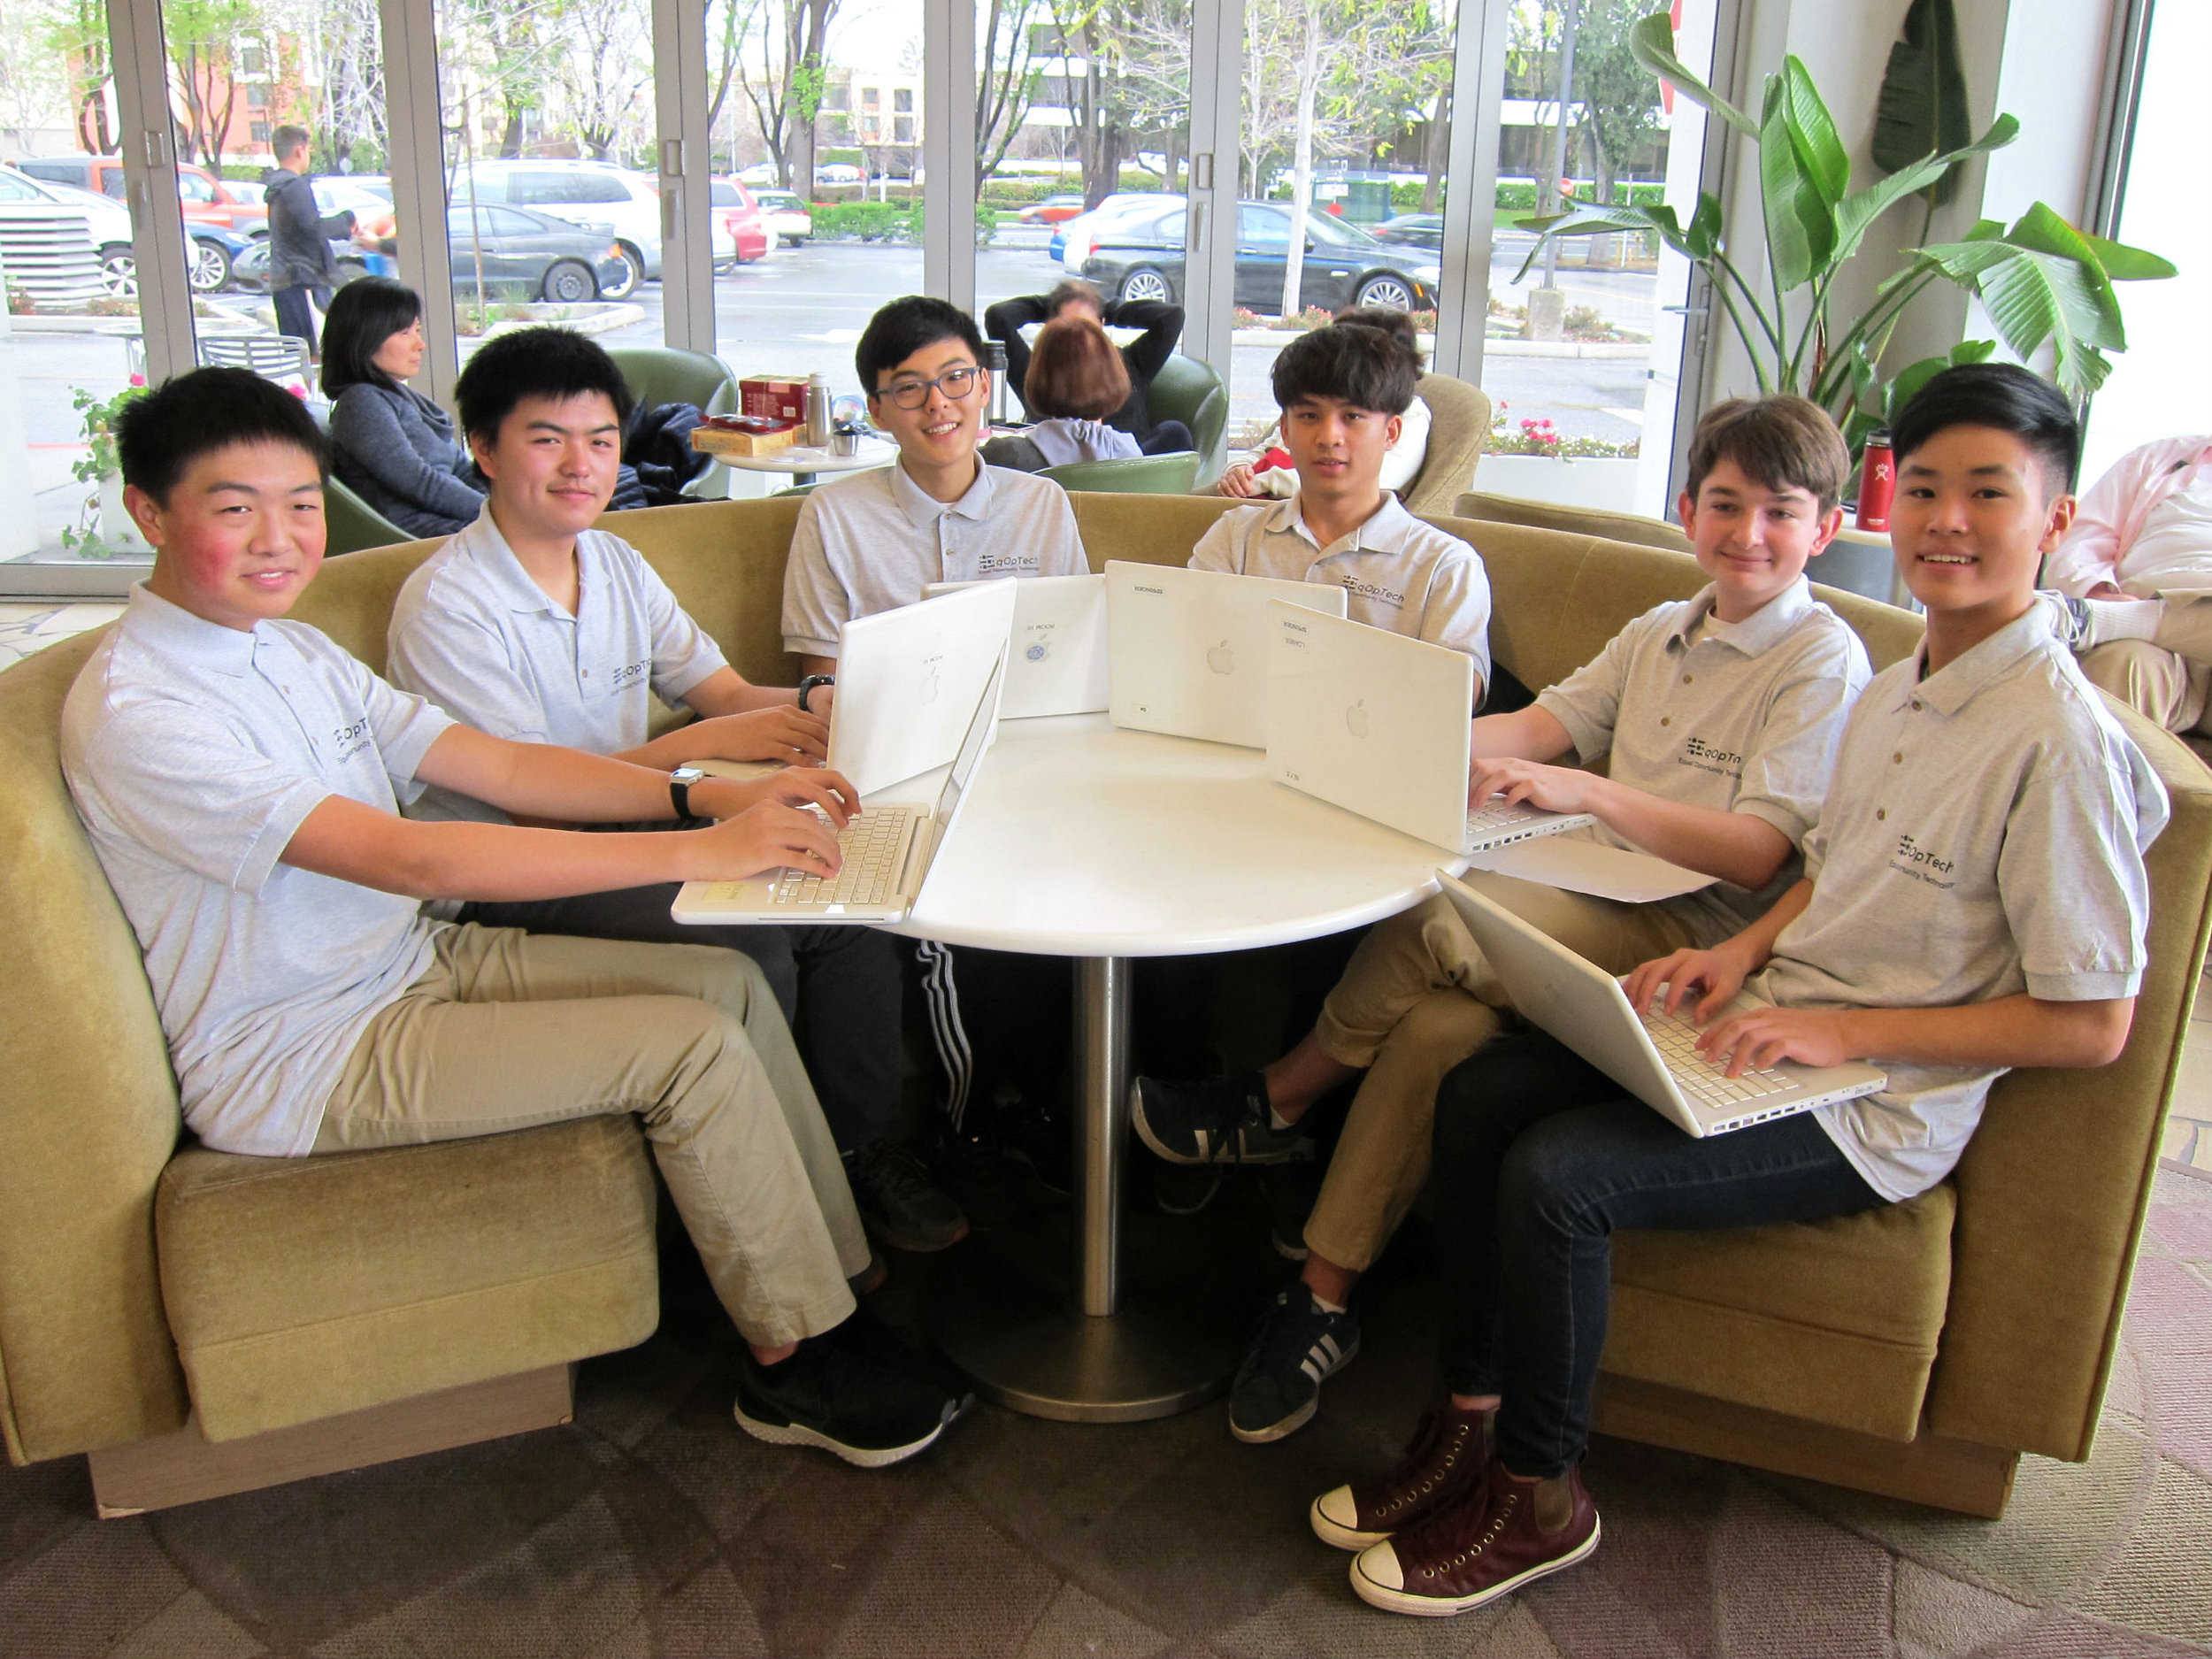 EqOpTech held a laptop refurbishing workshop at the Bay Club. Pictured, from left, are Eric Che, Kevin Gao, Daniel Lim, Nate Latif, Trevor Smith and Cedric Chan.